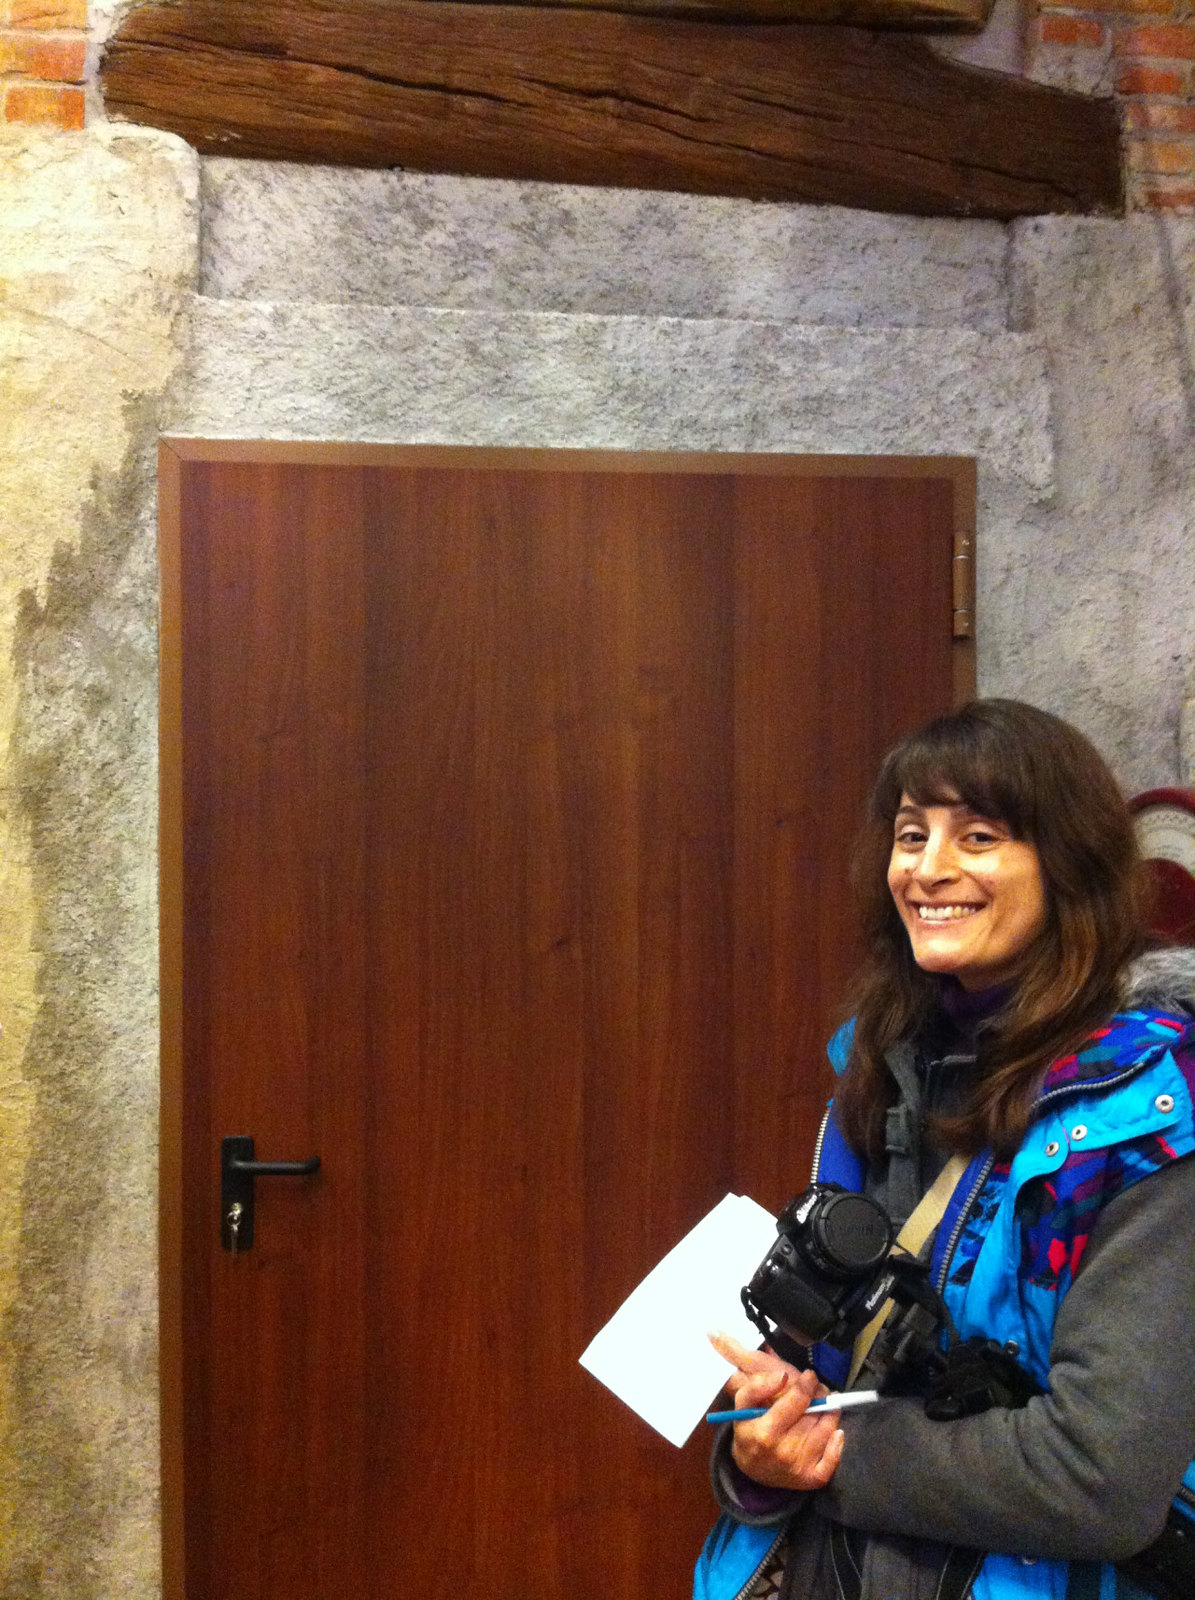 A Trip to a Cheese Cave, Arona, Piedmont, Italy 8